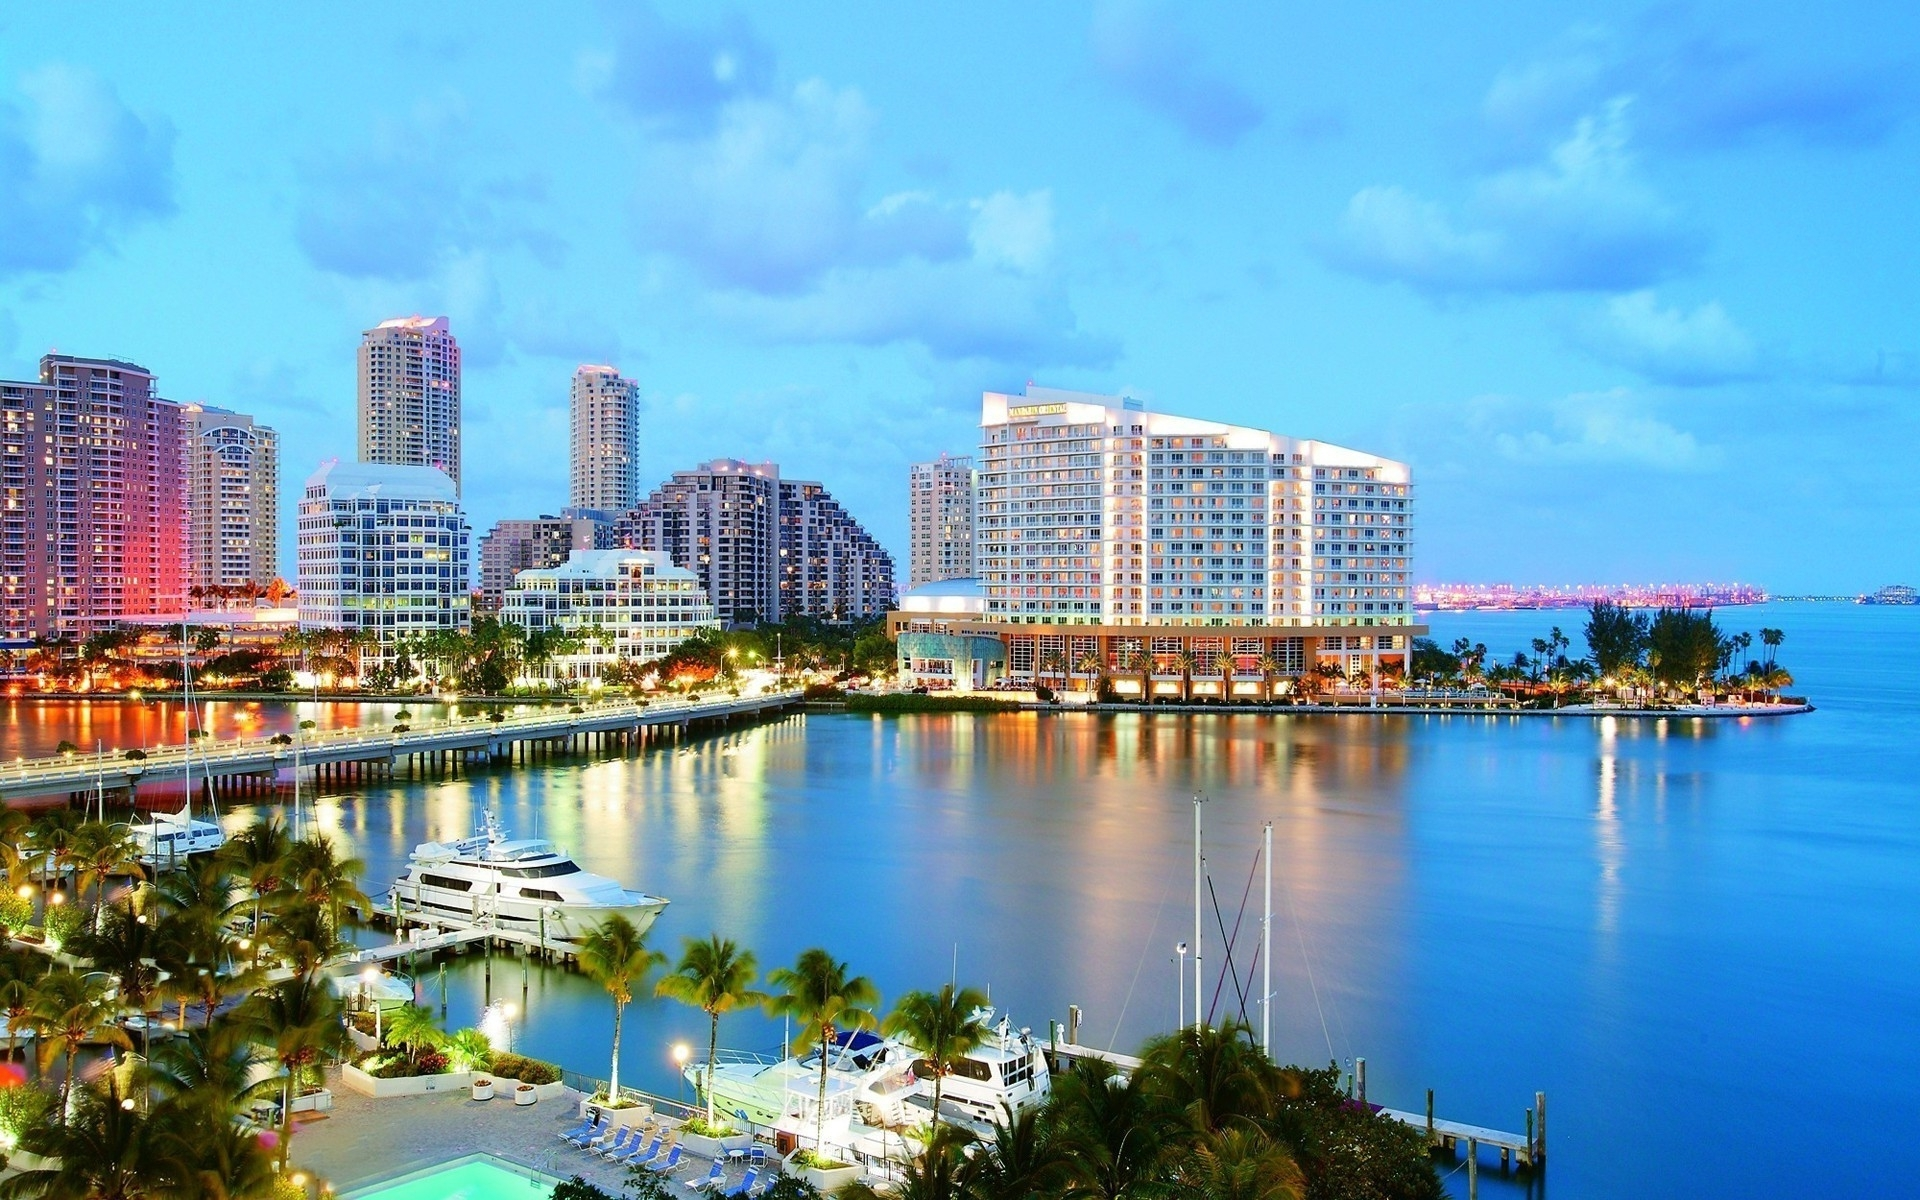 miami wallpaper ·① download free awesome hd wallpapers of miami